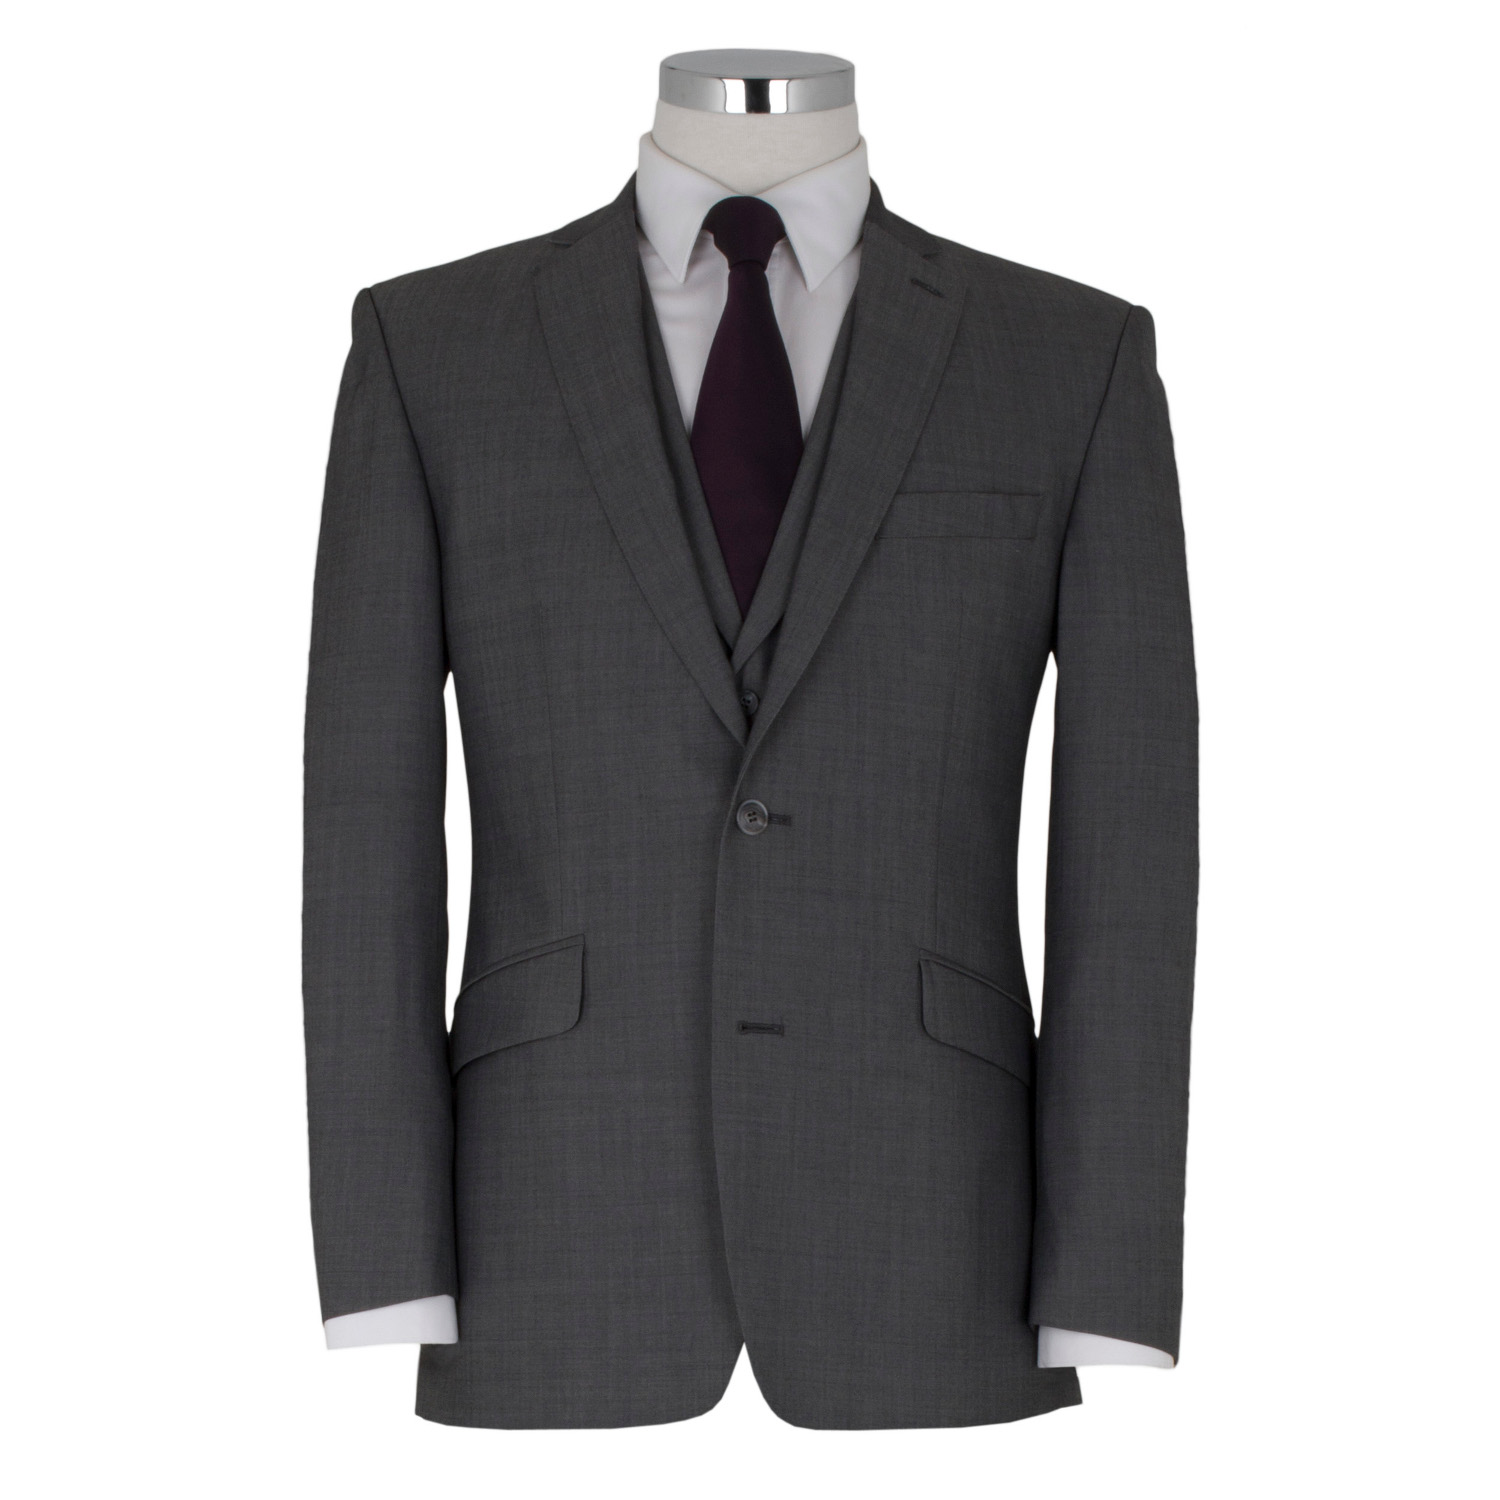 Silver 3 Piece with Notch Lapel Waistcoat